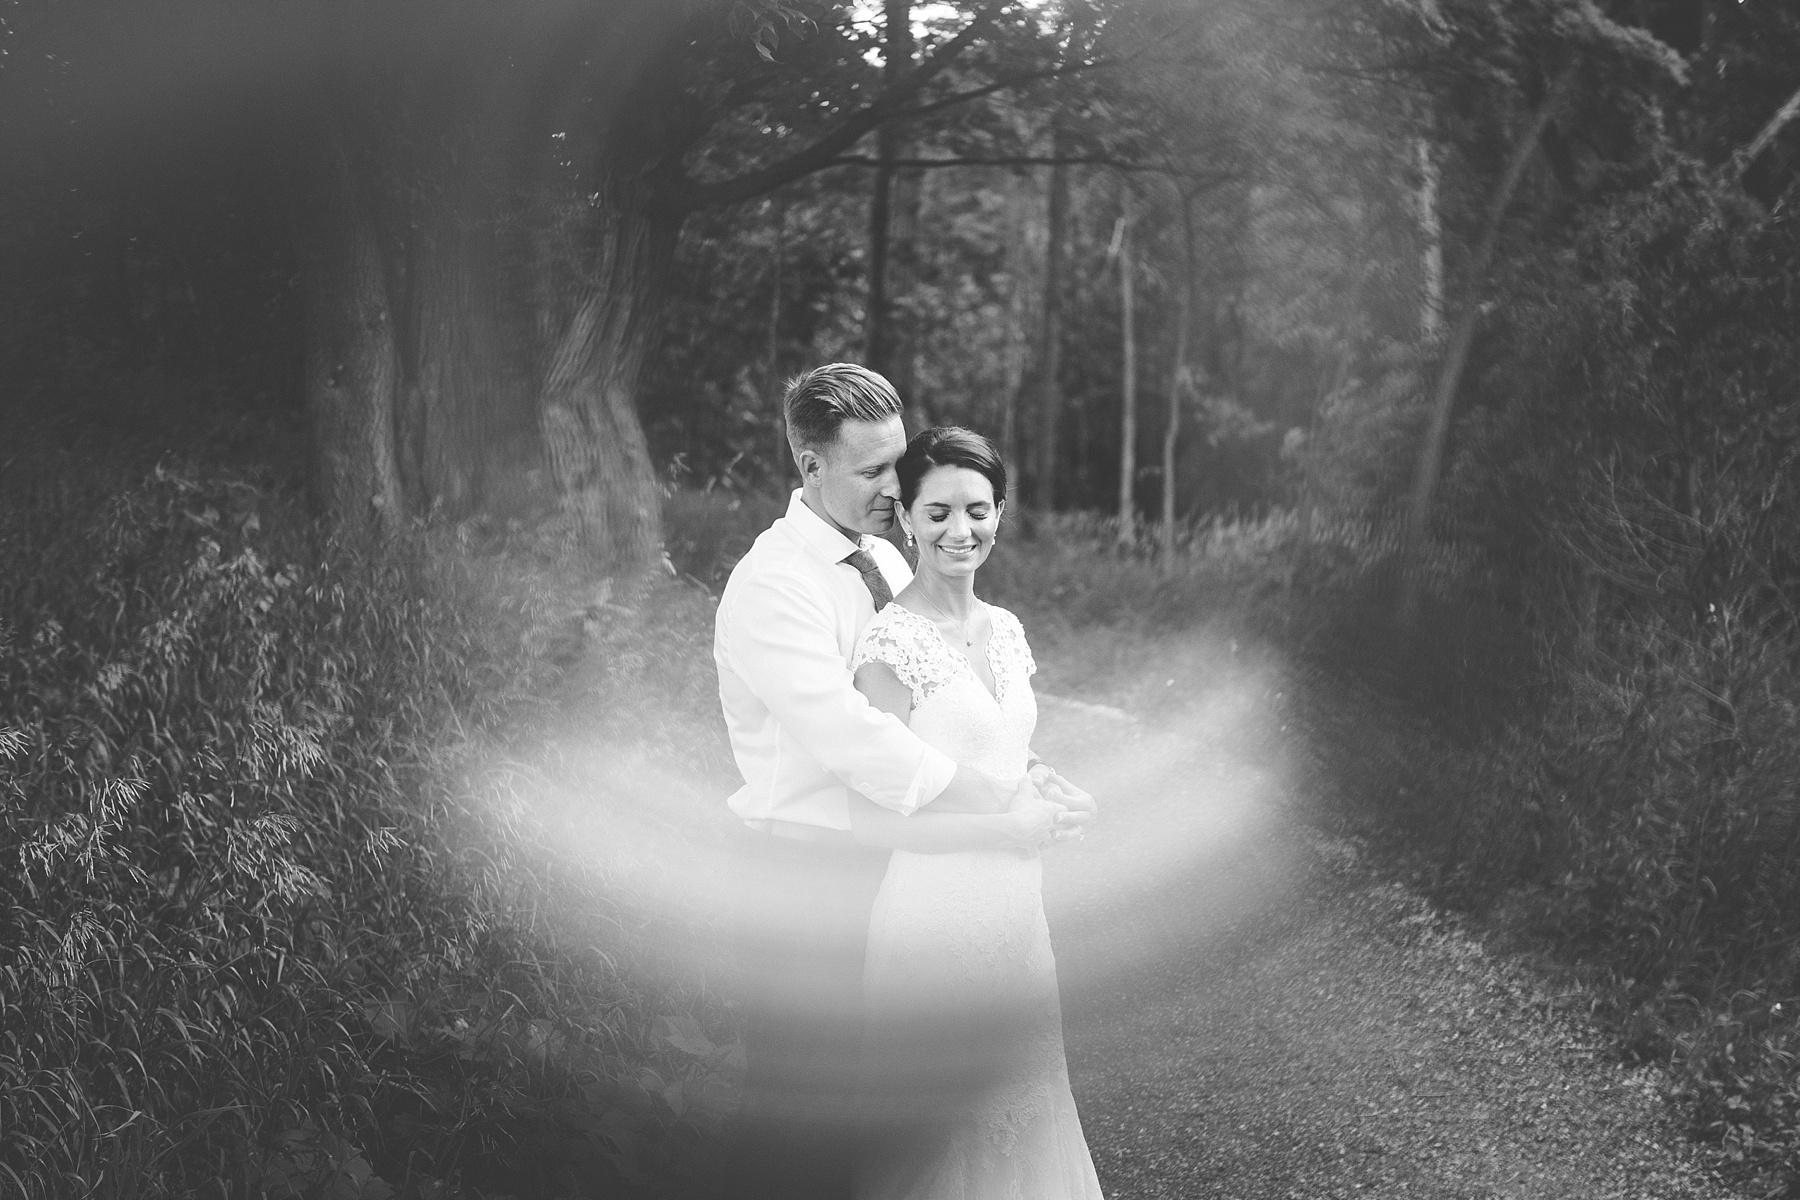 Brandon_Shafer_Photography_Traverse_City_Wedding_0062.jpg